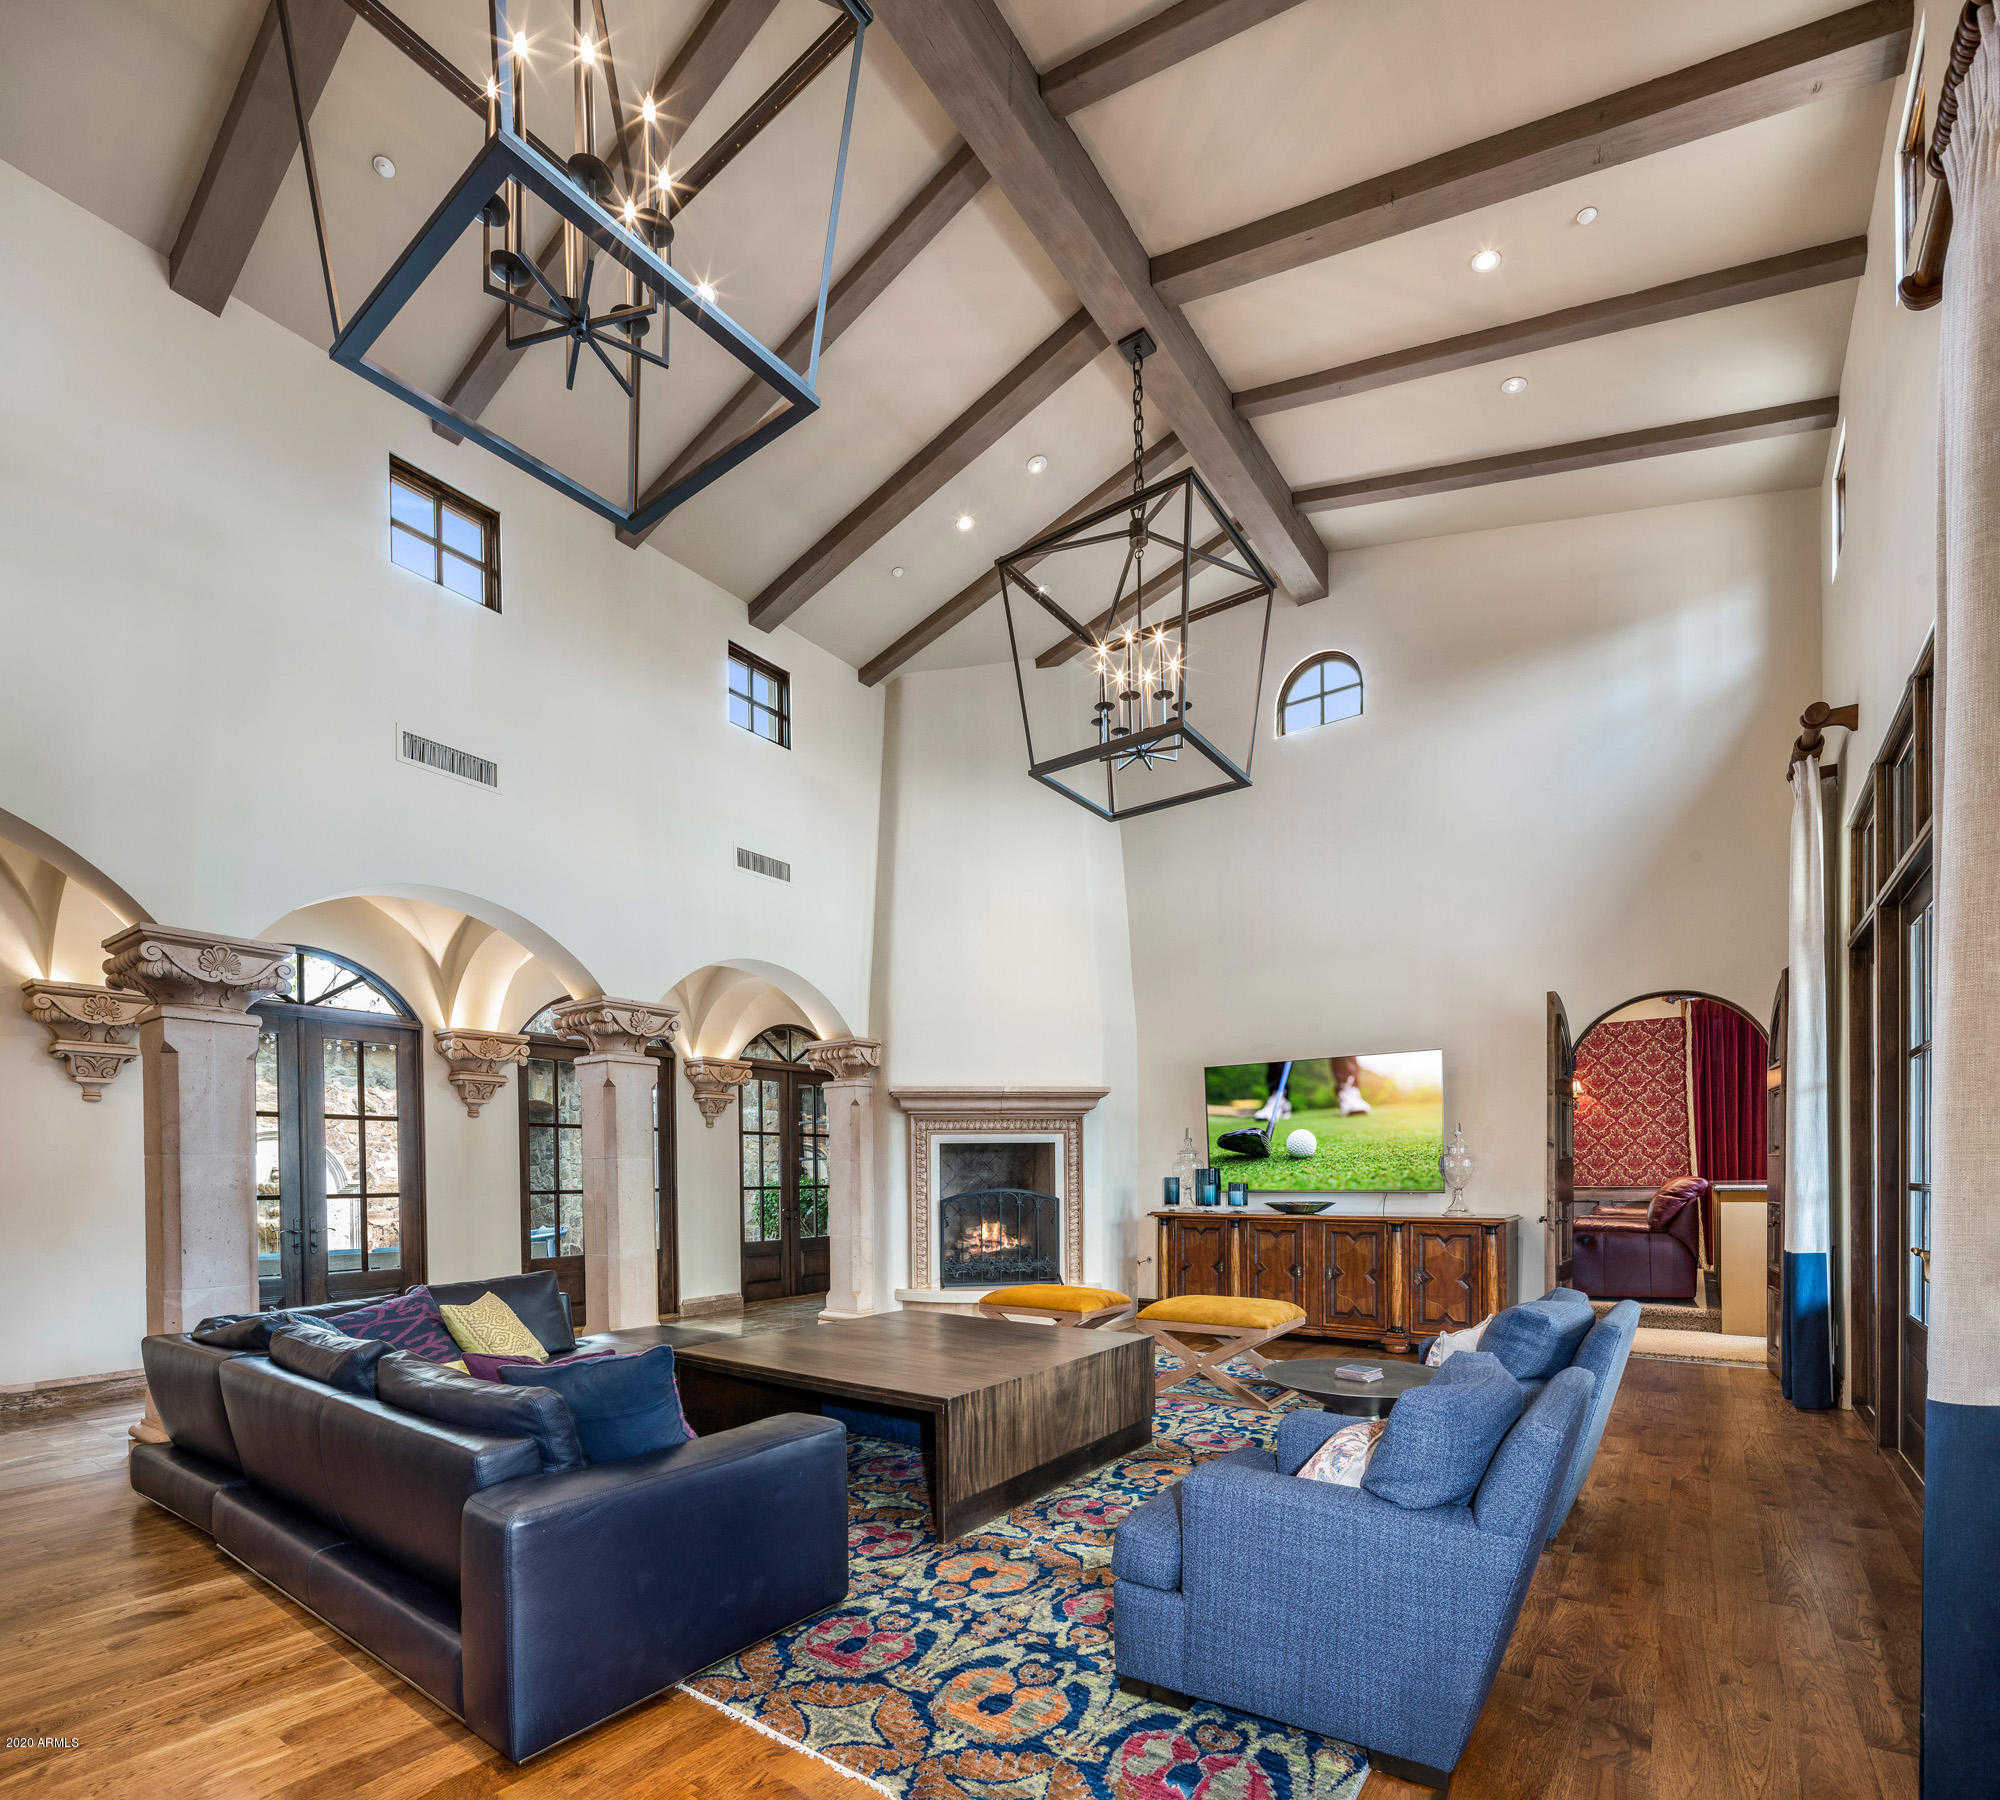 $4,499,000 - 5Br/6Ba - Home for Sale in Equestrian Trails, Paradise Valley